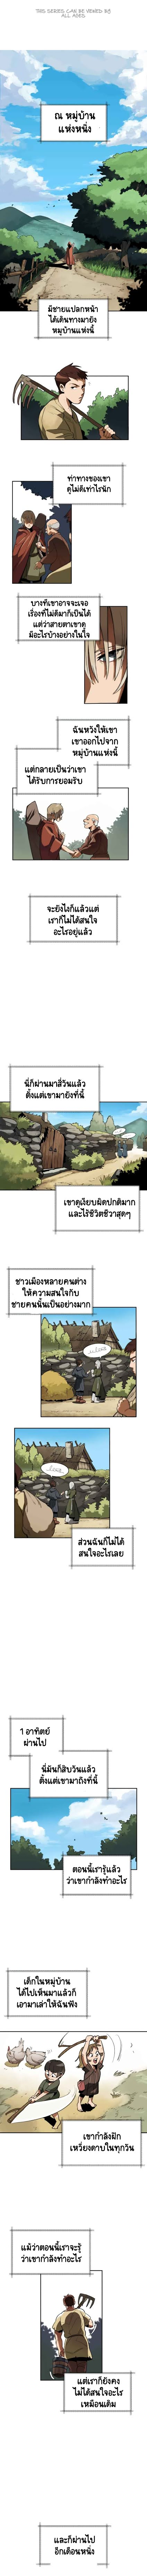 The Lazy Prince Becomes A Genius - หน้า 2